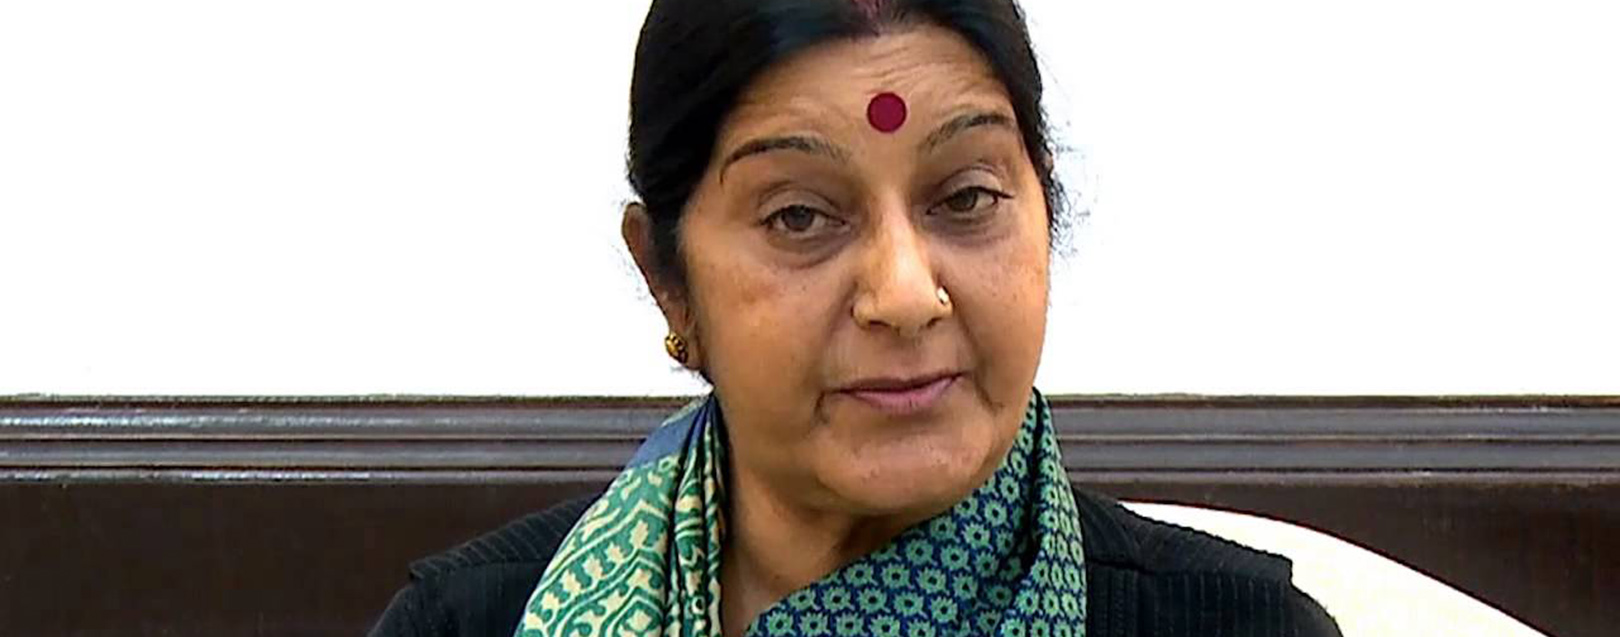 India attracted $55 billion in FDI in two years: EAM